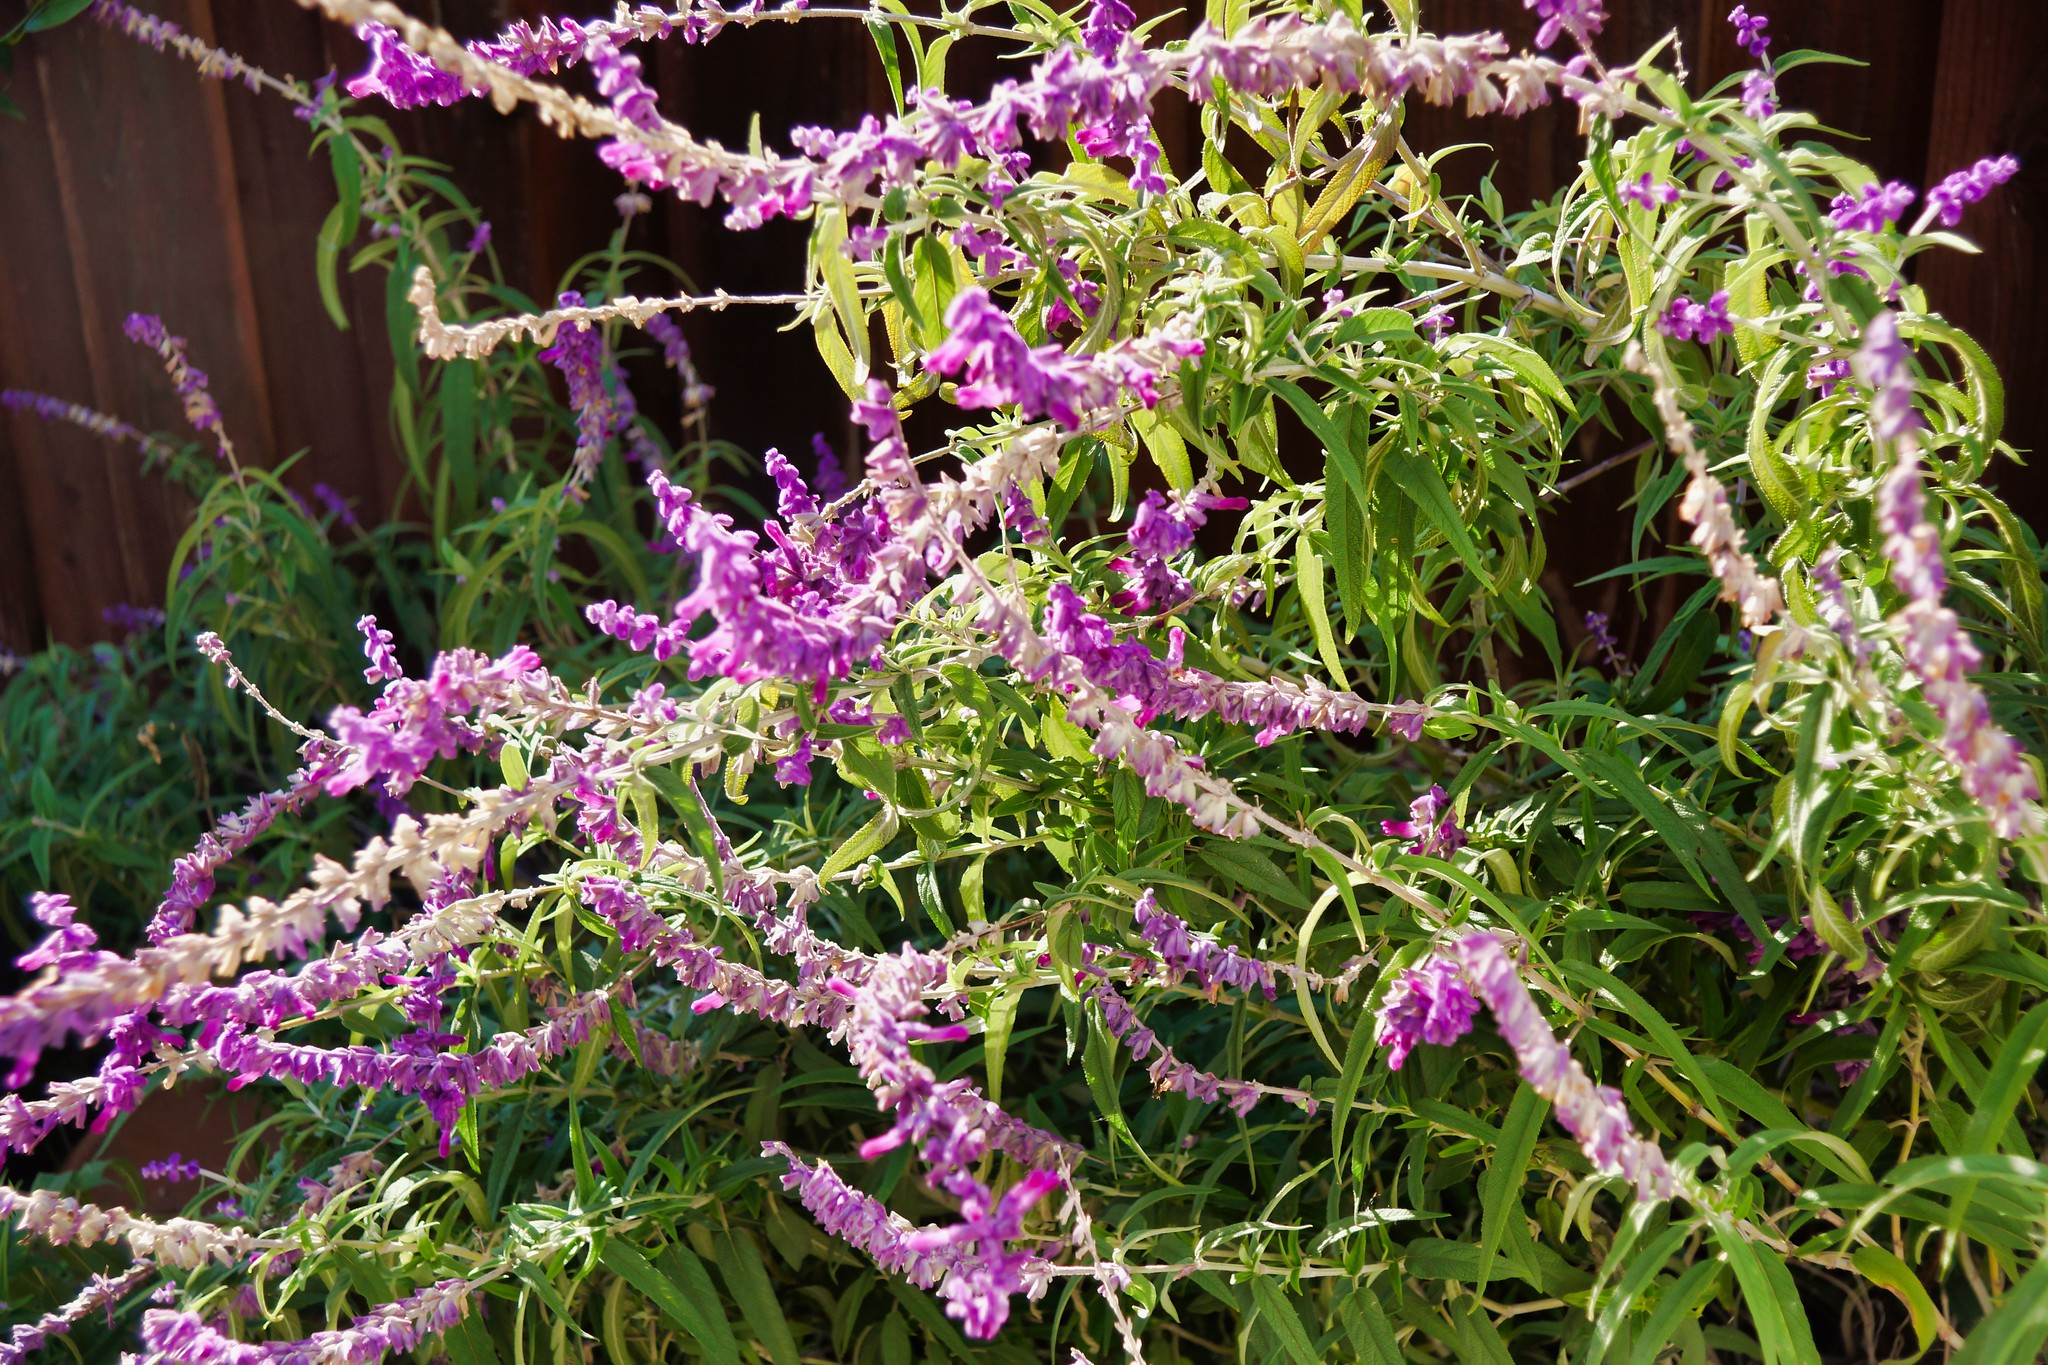 2019-01-23 - Nature Photography - Lavender